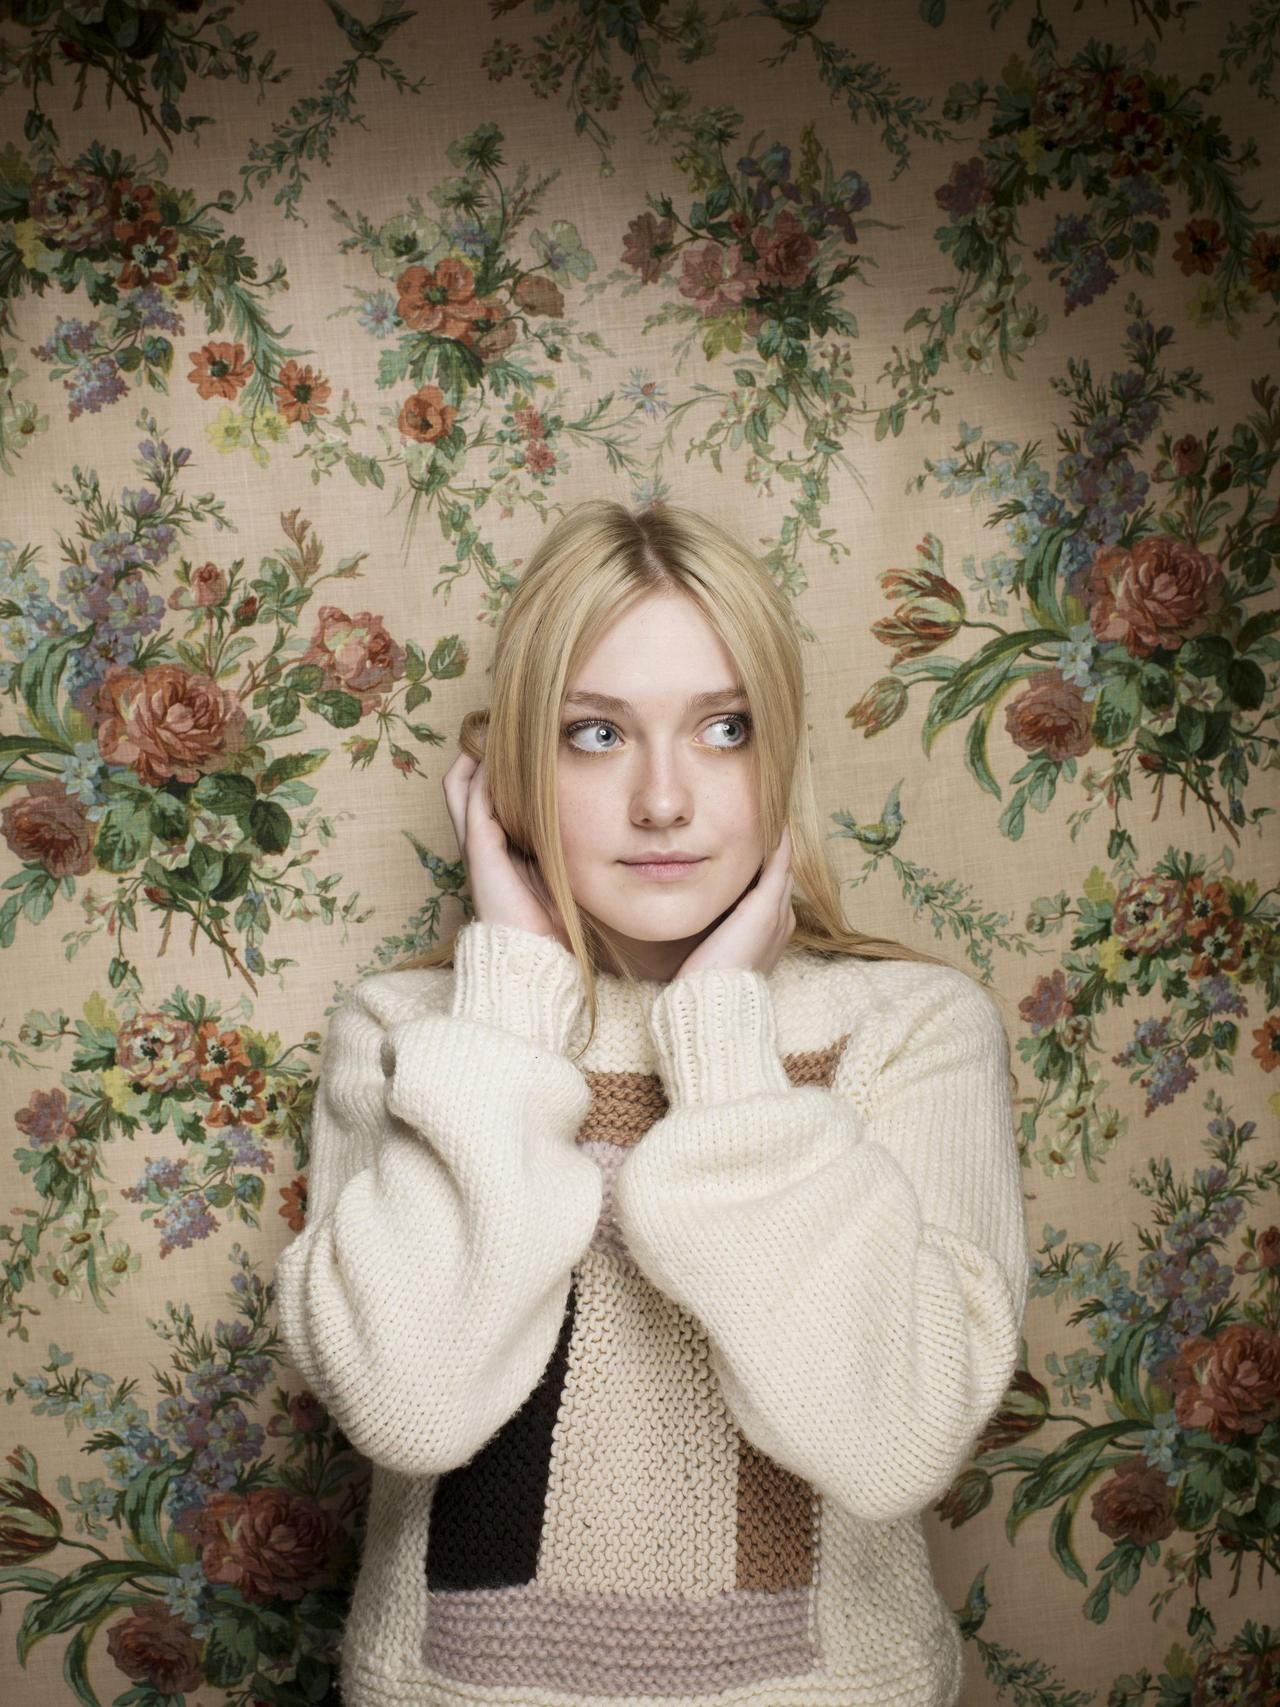 Dakota Fanning photographed by Victoria Will